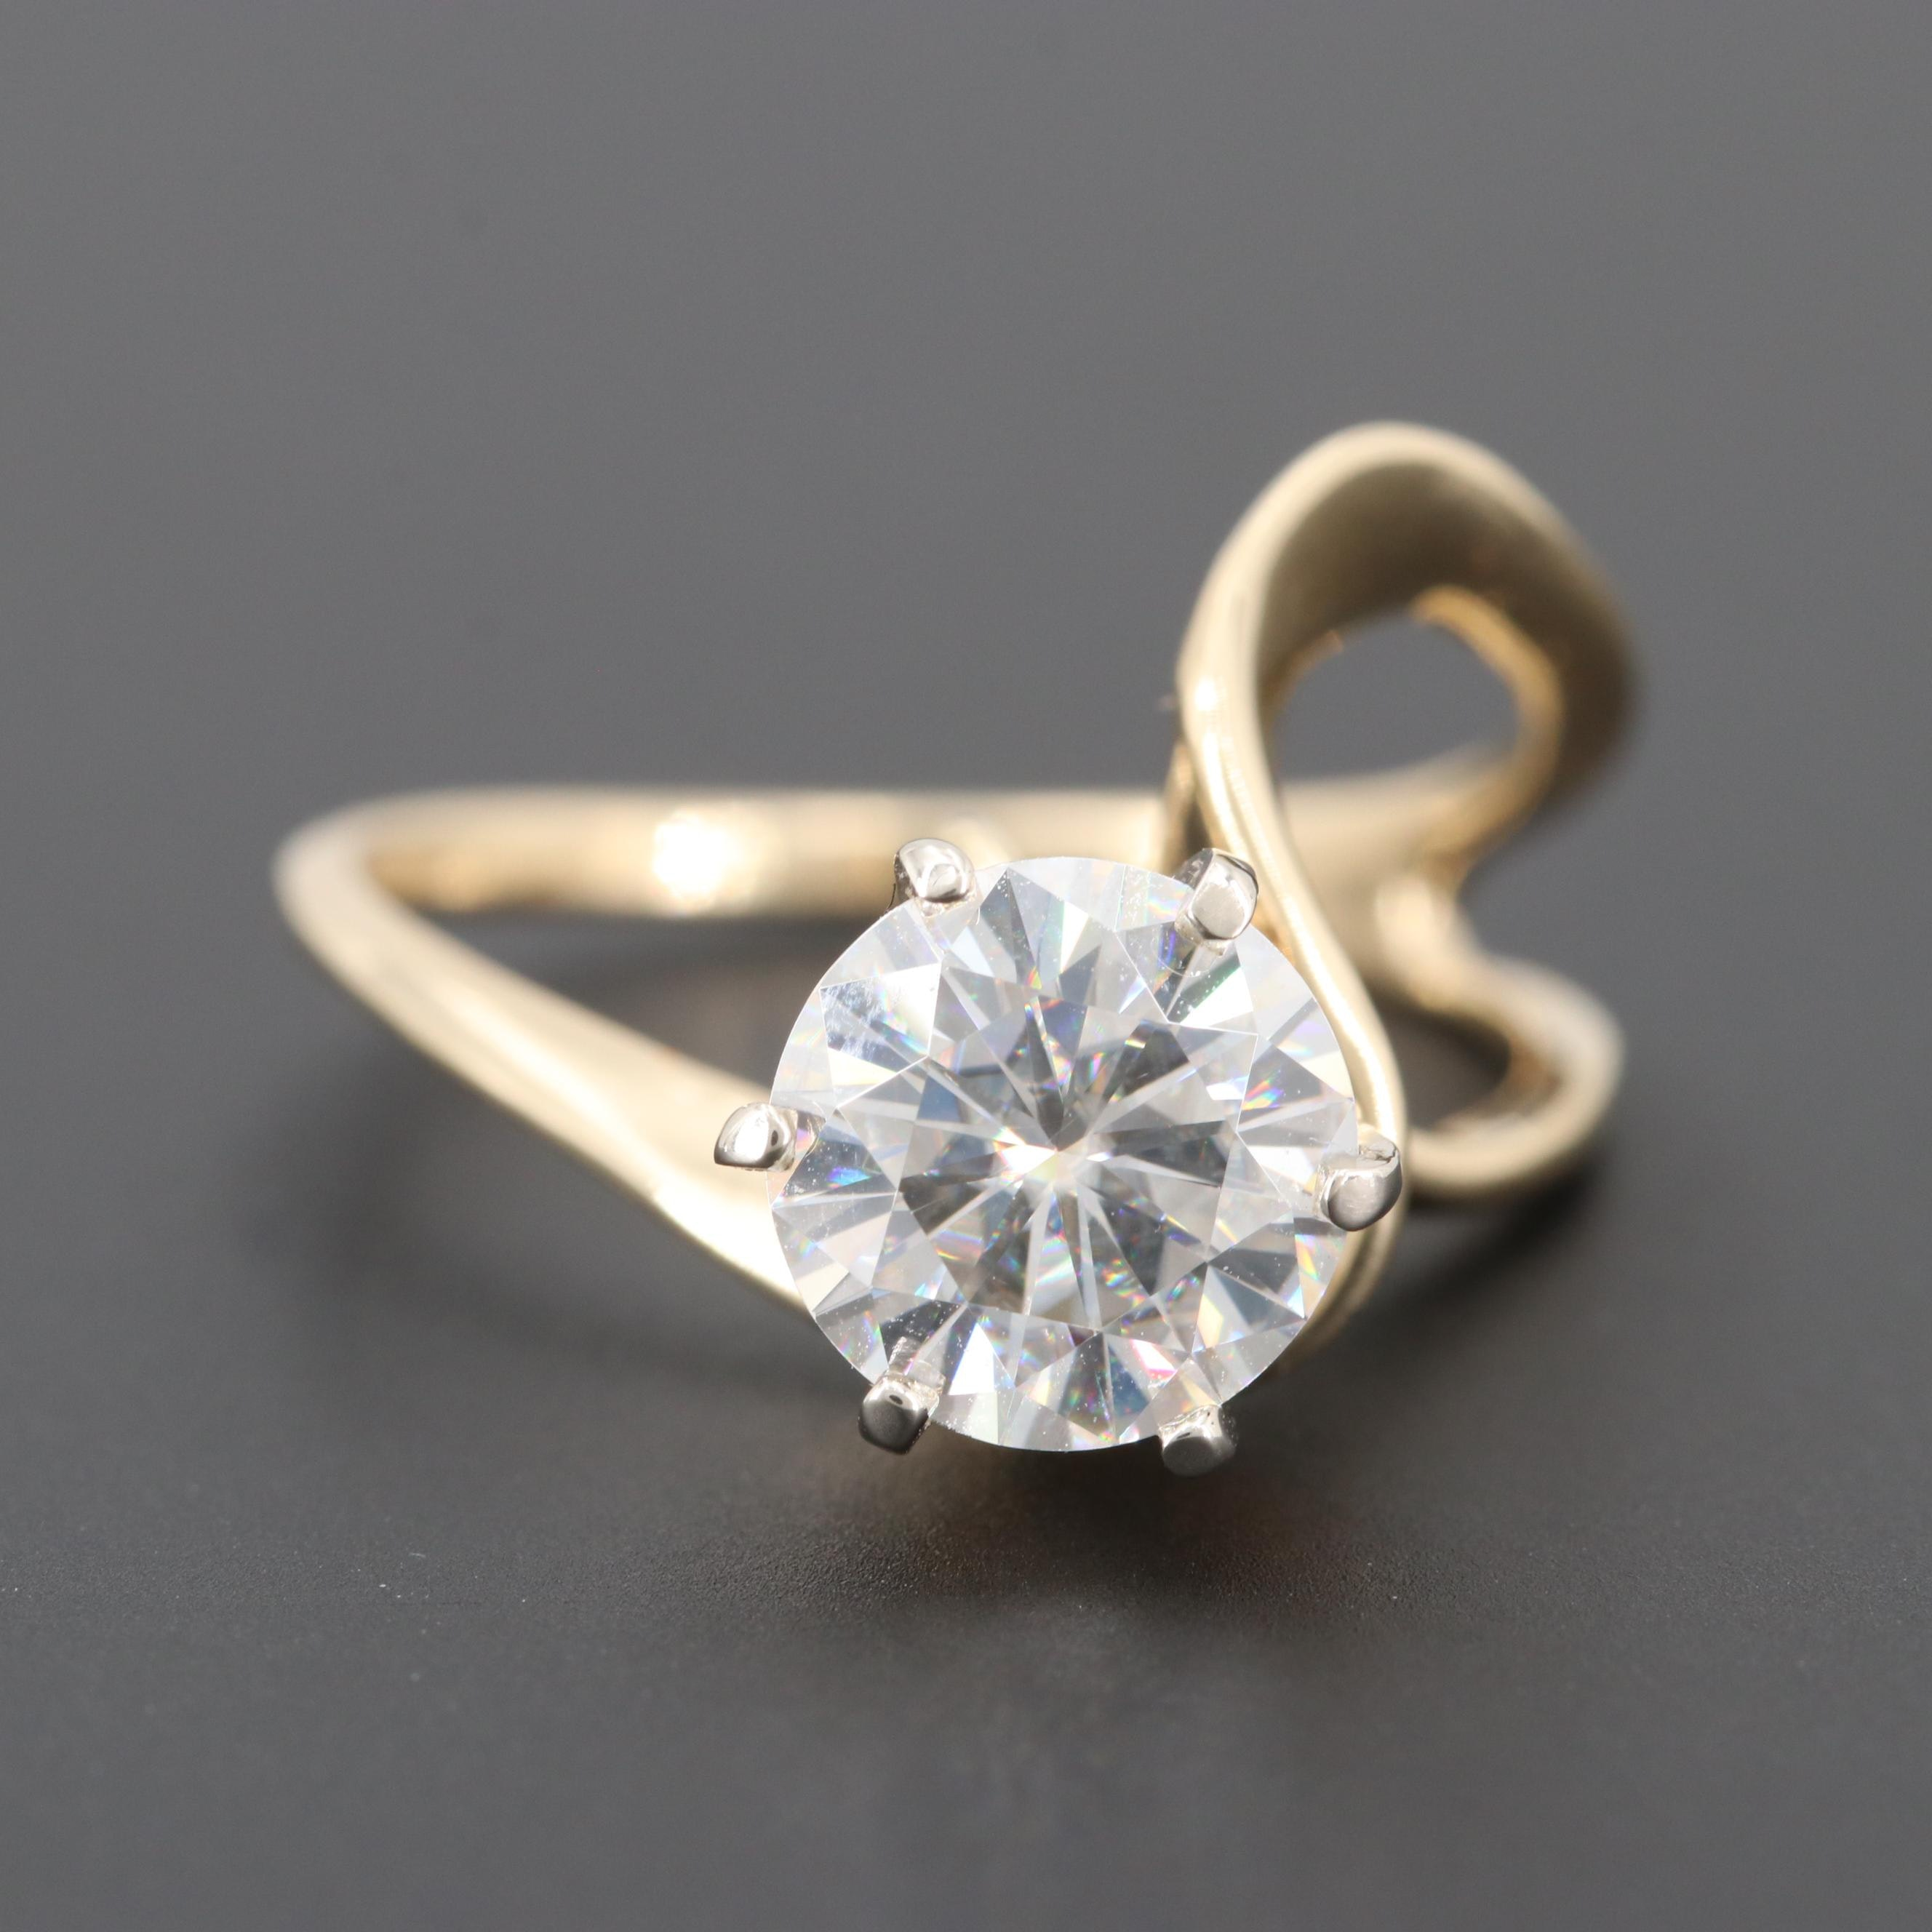 14K Yellow Gold Moissanite Ring with Hook for Shadow Band